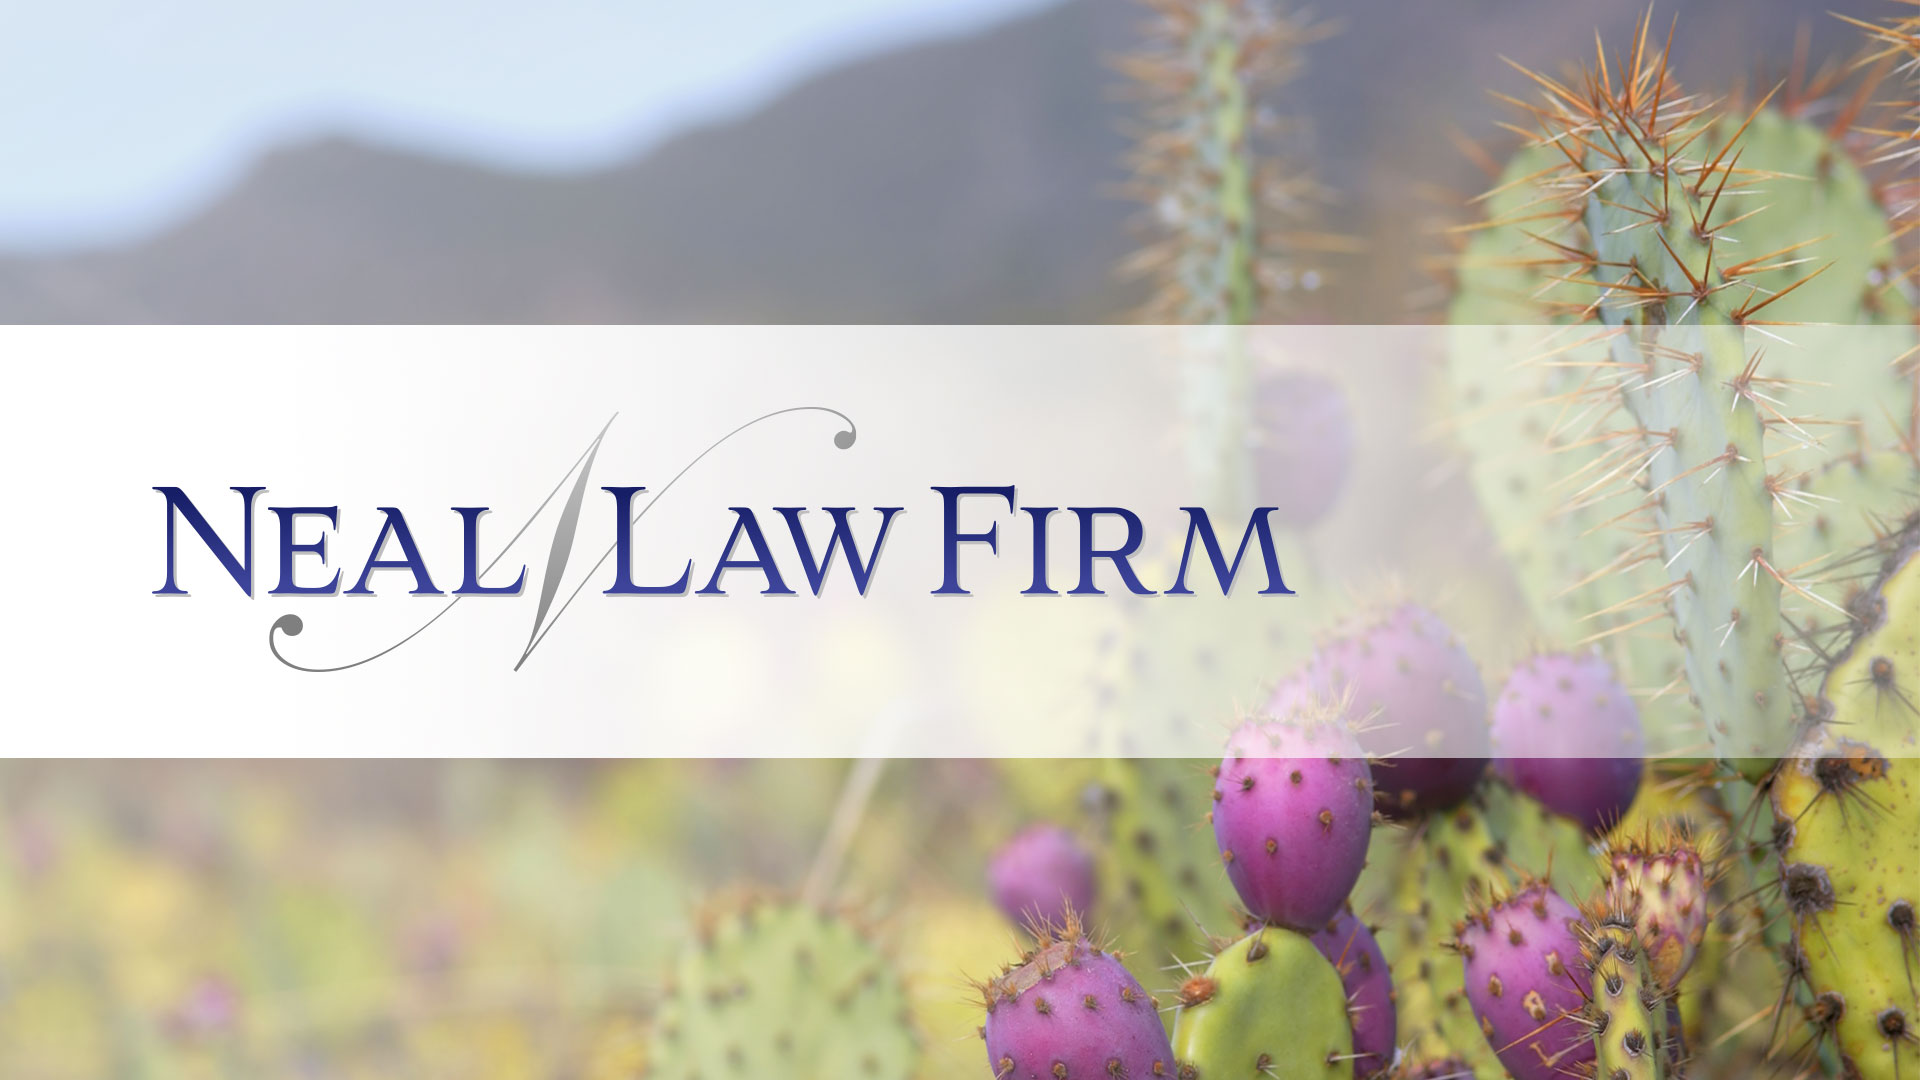 Law Firm Branding and Marketing Design